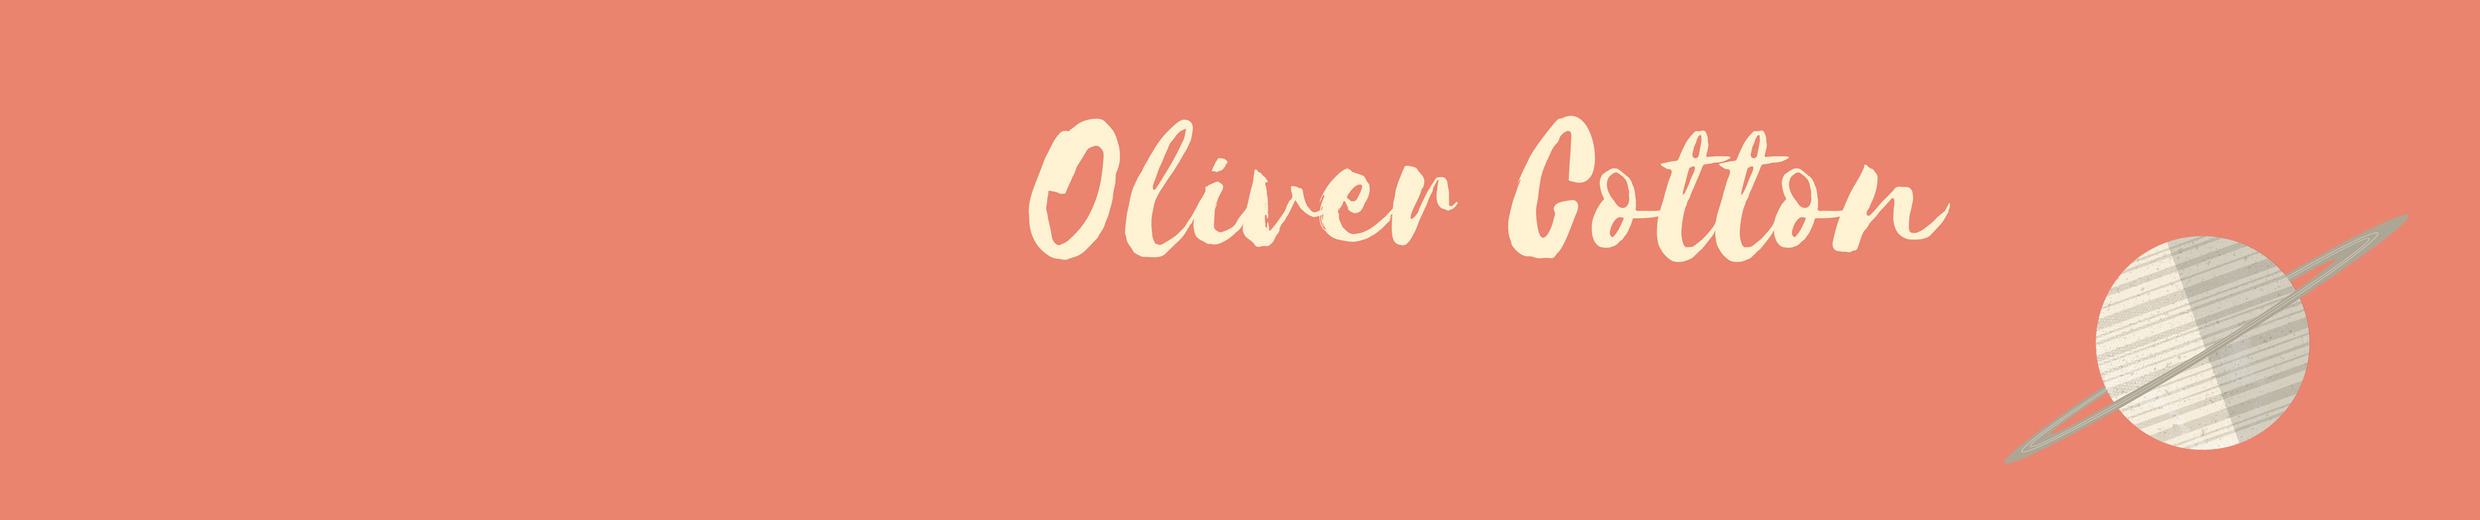 Oliver (@olivercotton) Cover Image